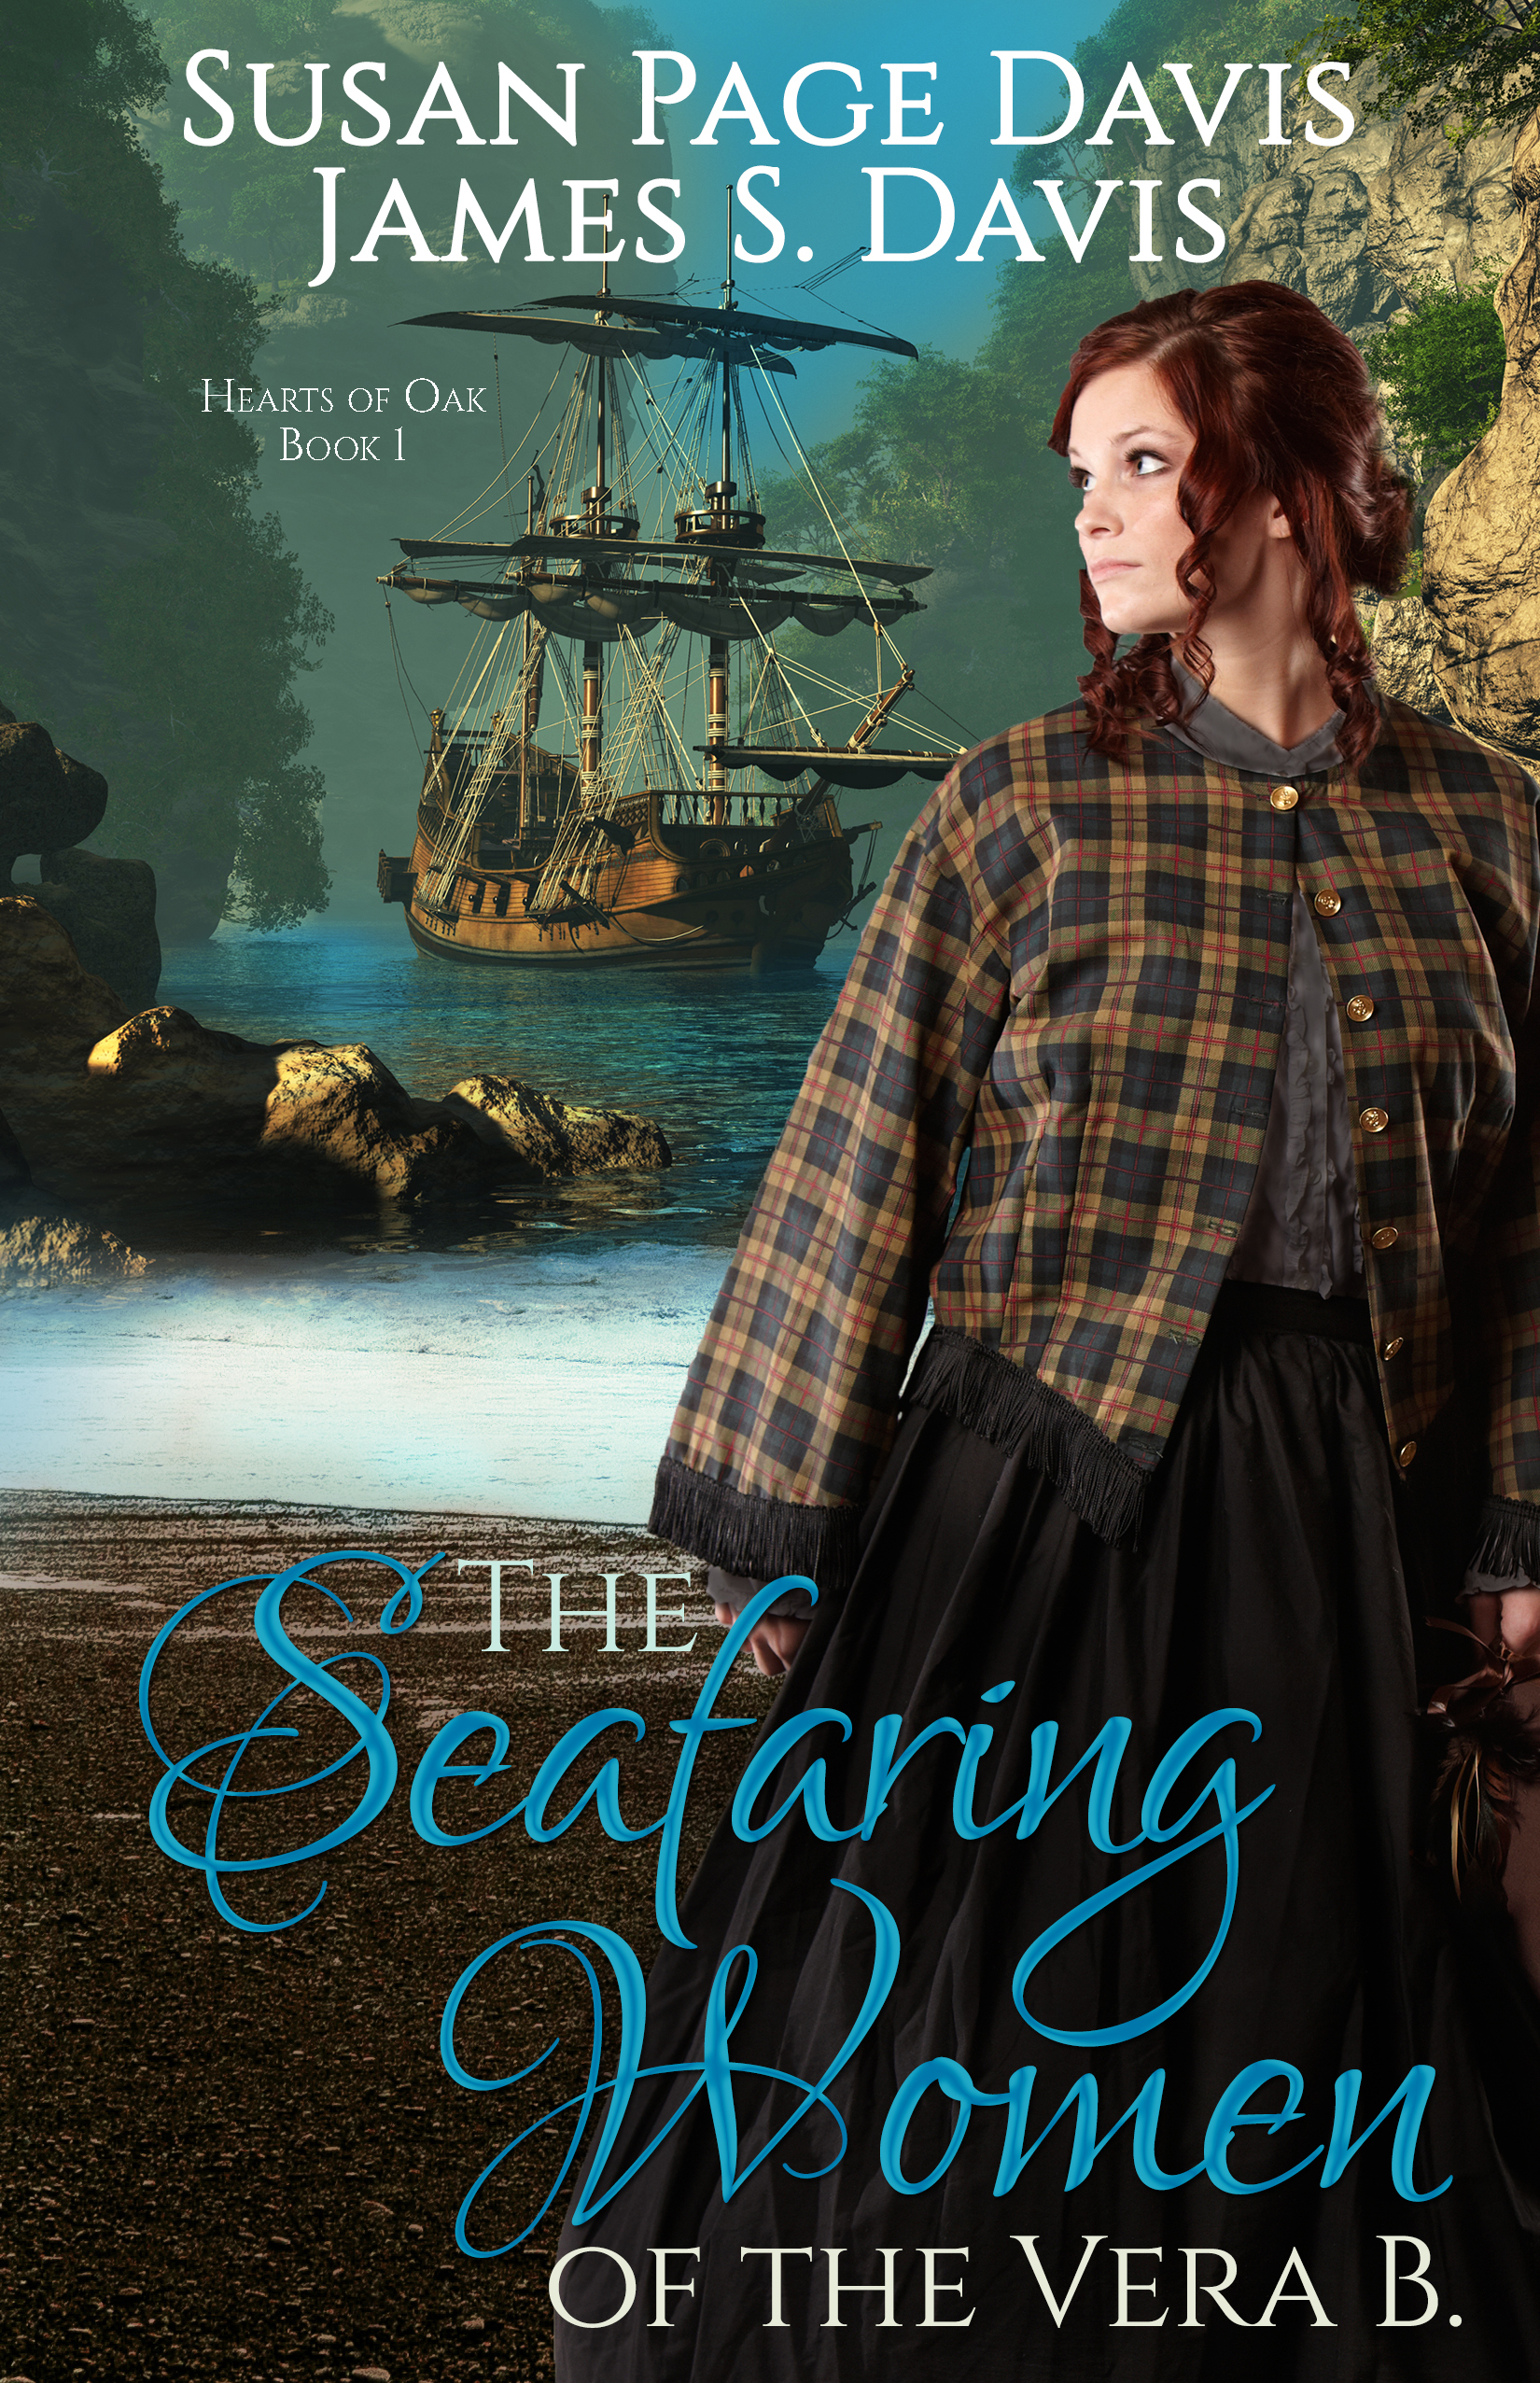 The Seafaring Women of the Vera B. Susan Page Davis